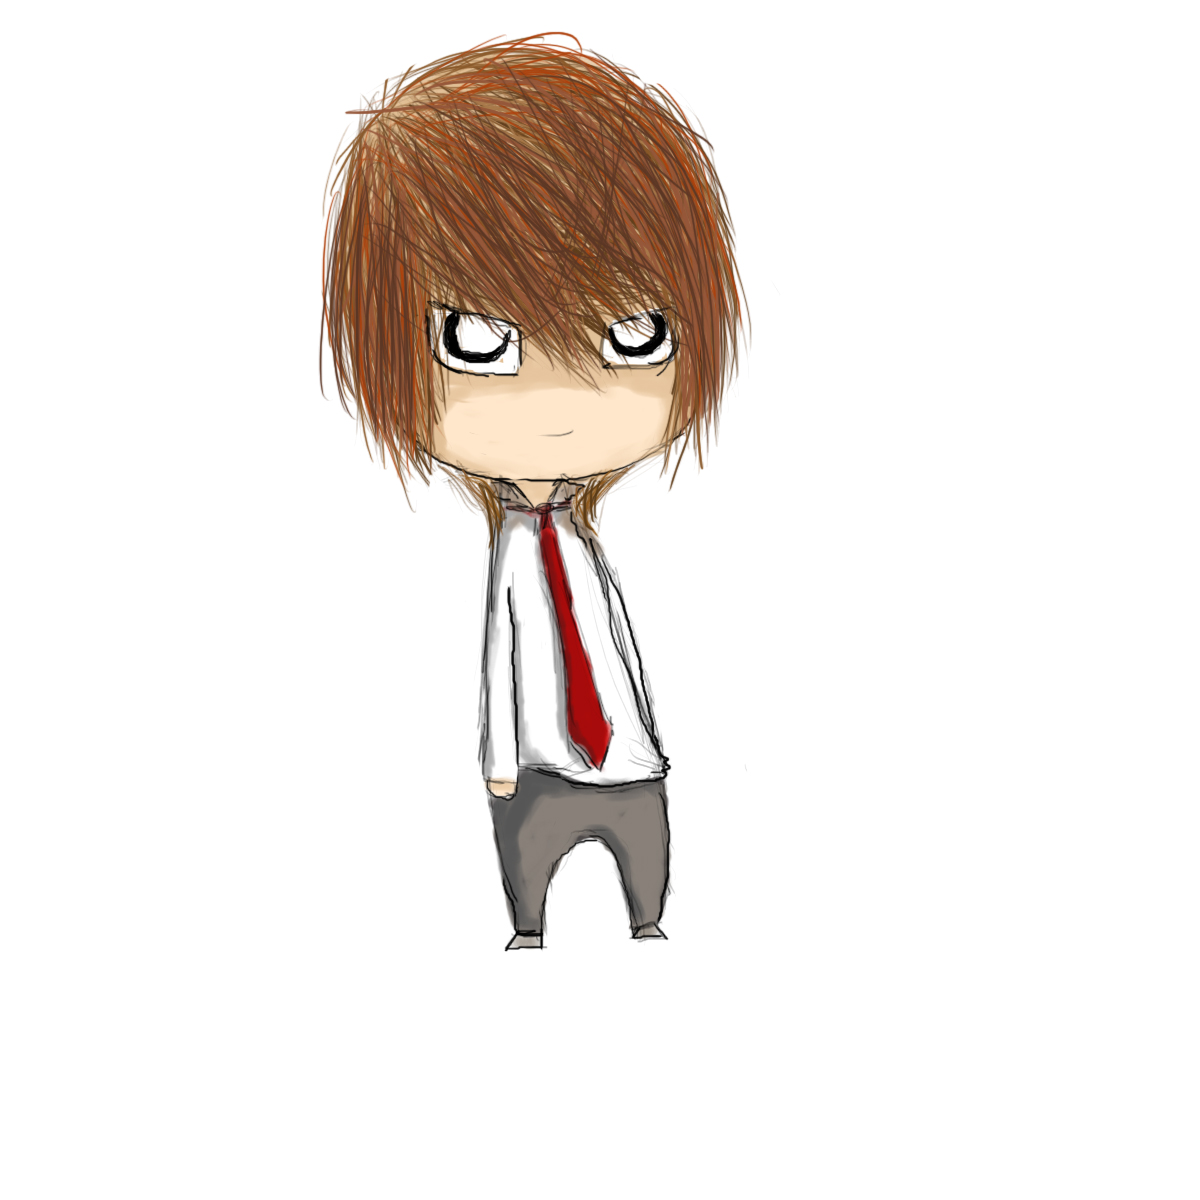 Chibi Light Yagami by AeroPenguin on DeviantArt